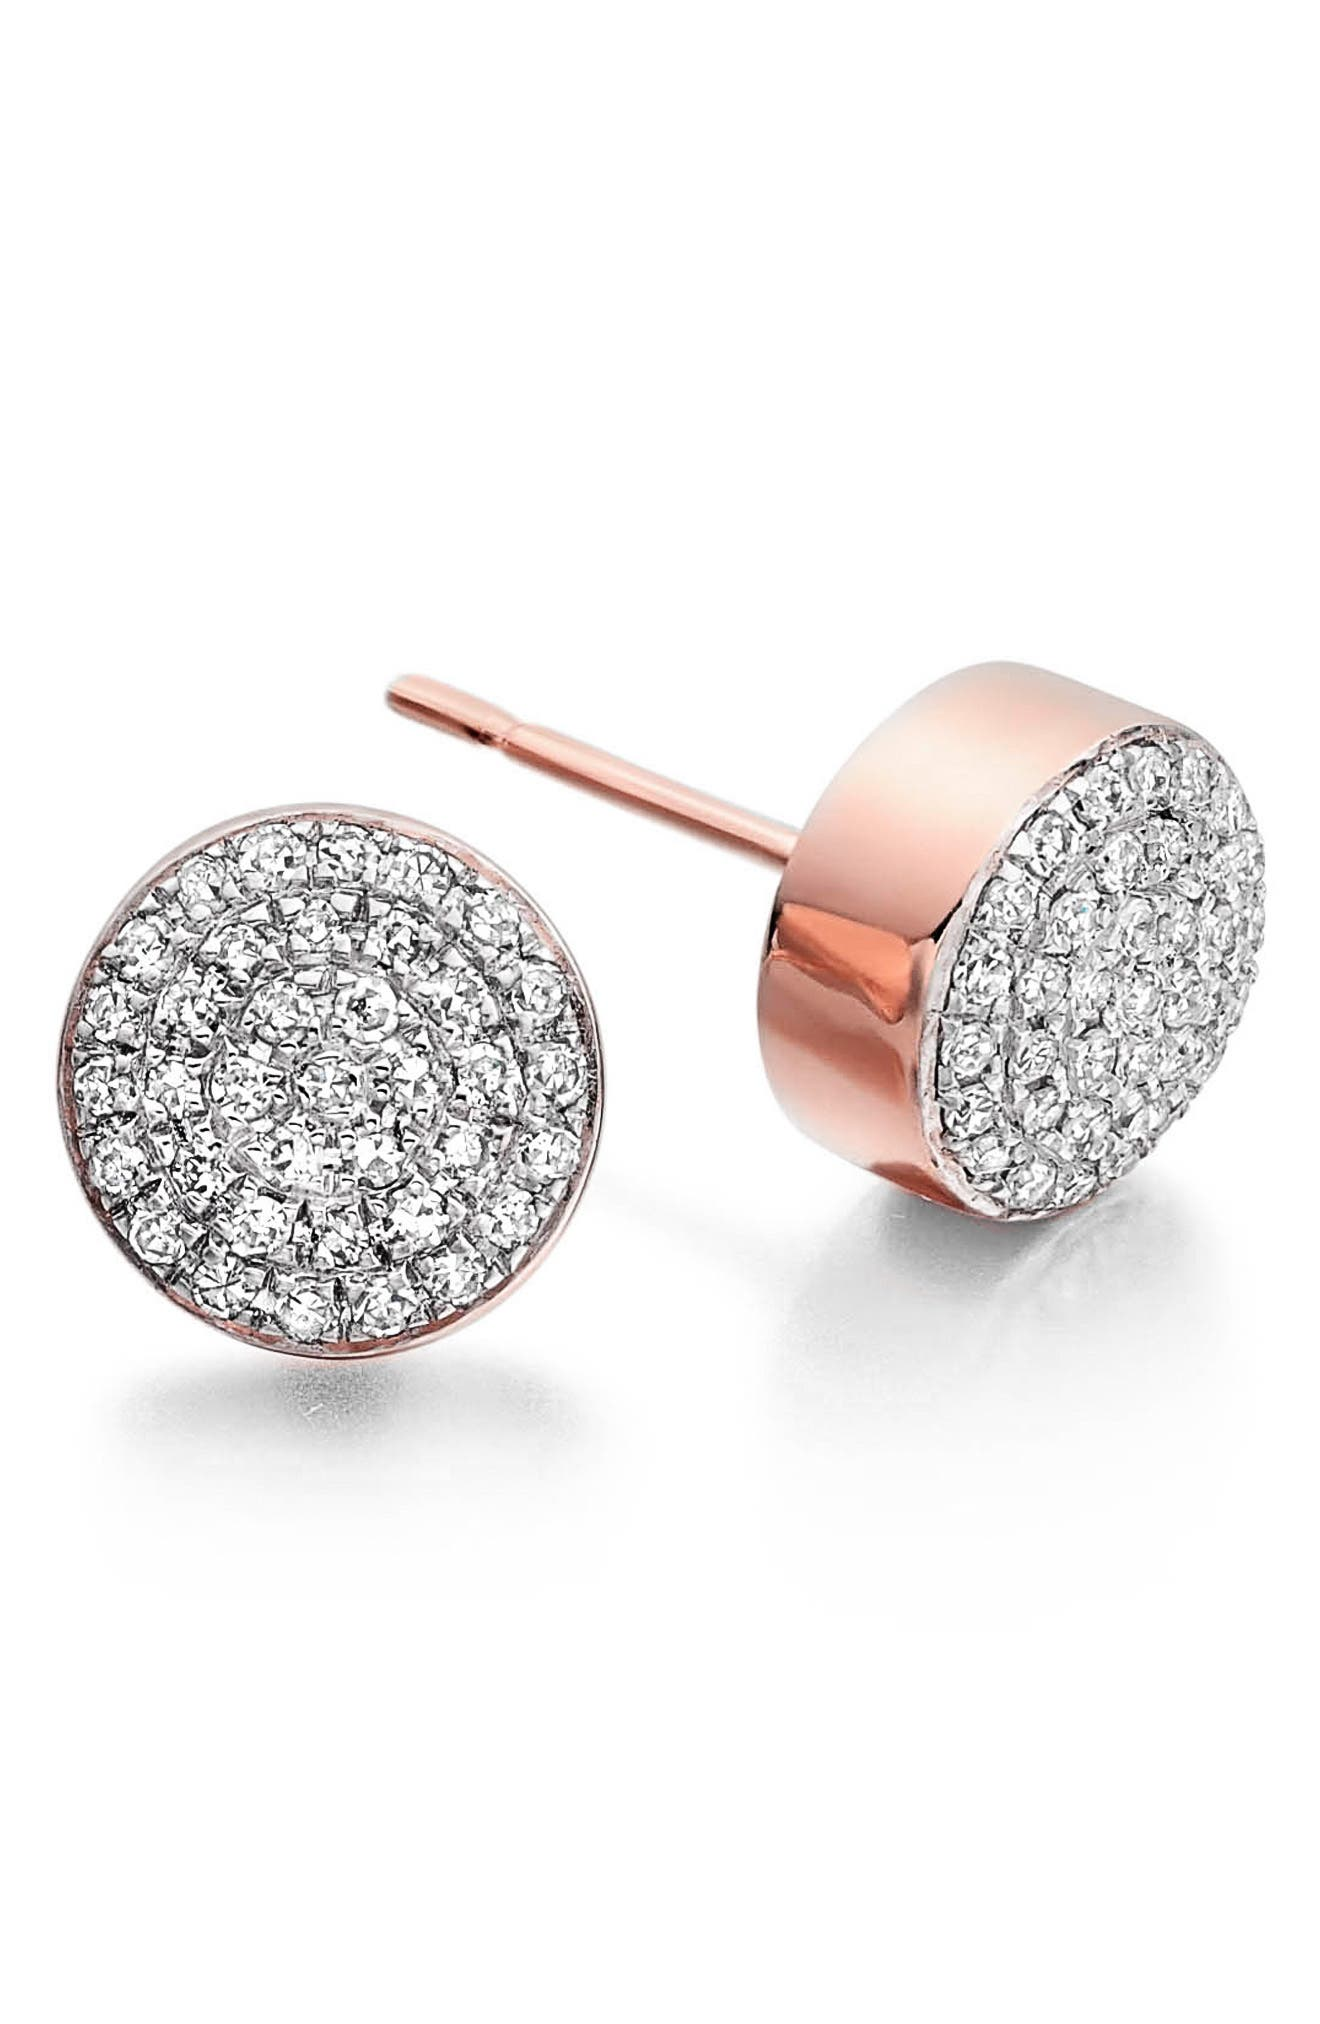 'Ava' Diamond Button Stud Earrings,                         Main,                         color, Rose Gold